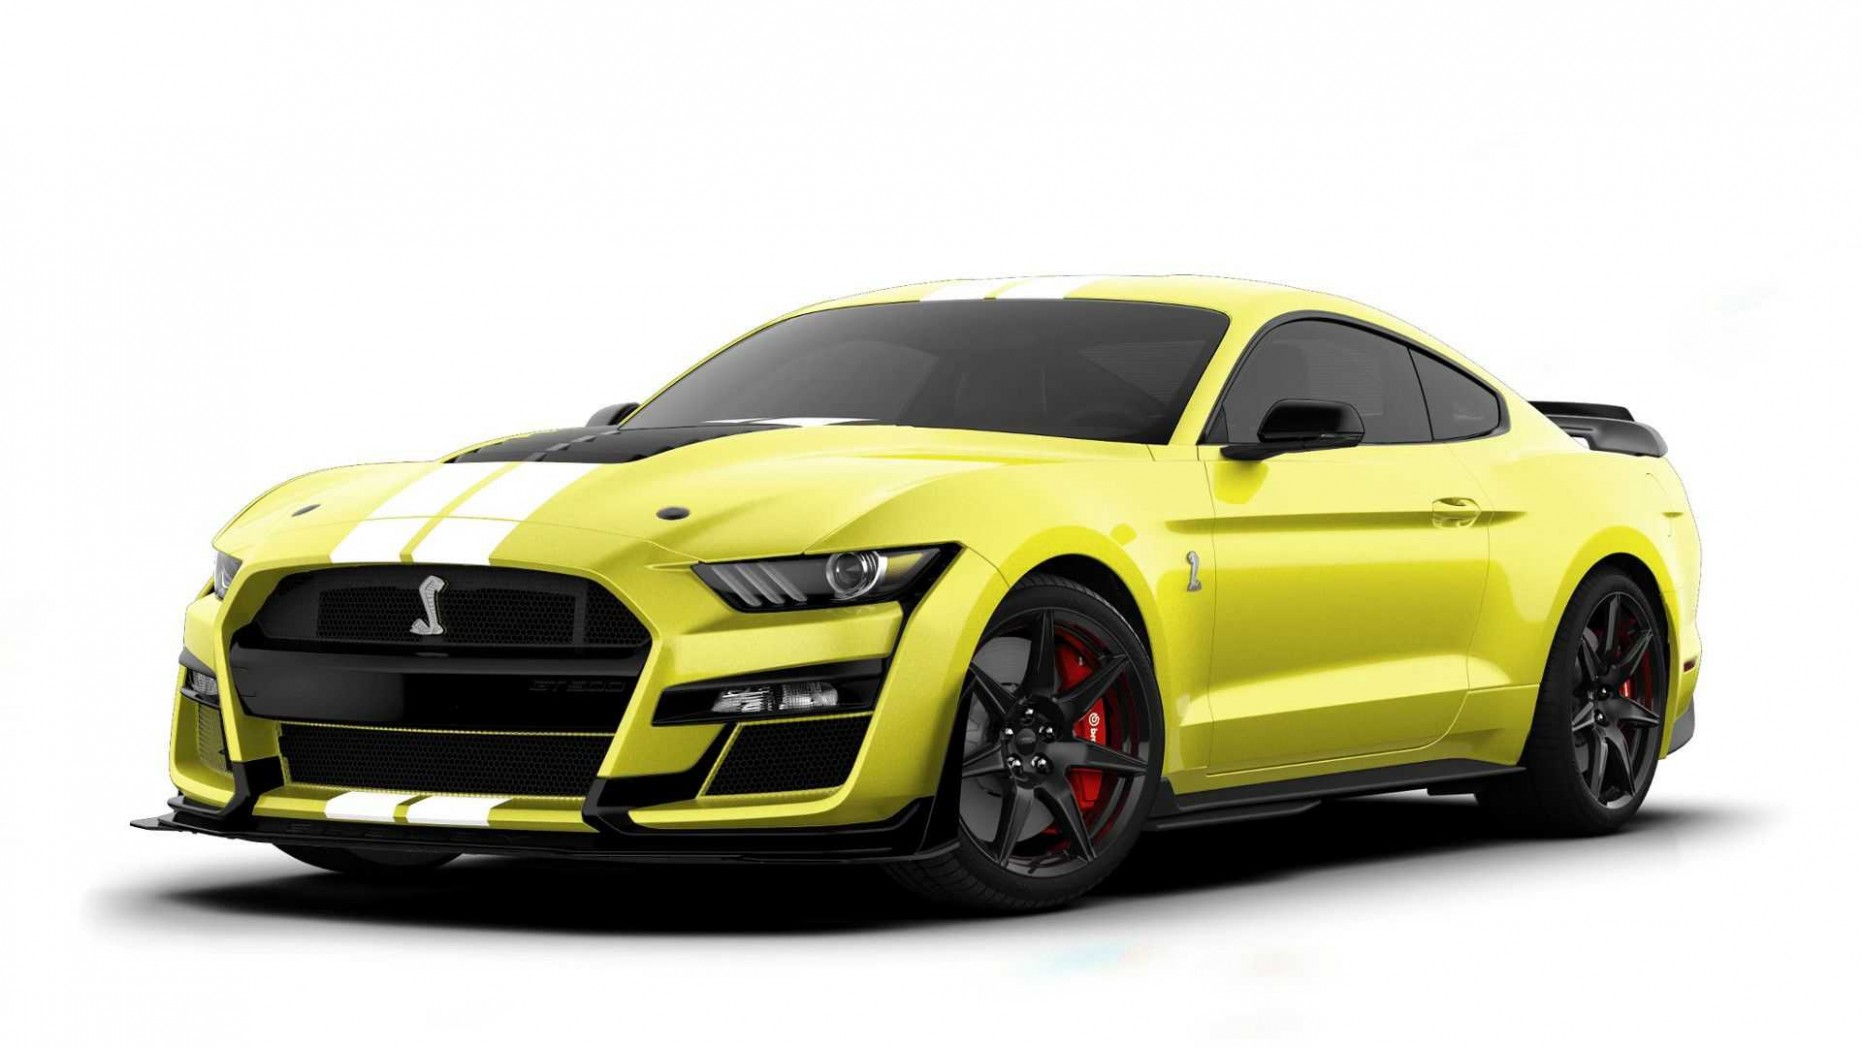 5 Ford Mustang Shelby GT5 Updated With Bold New Colors, Options - Ford Gt500 Specs 2021